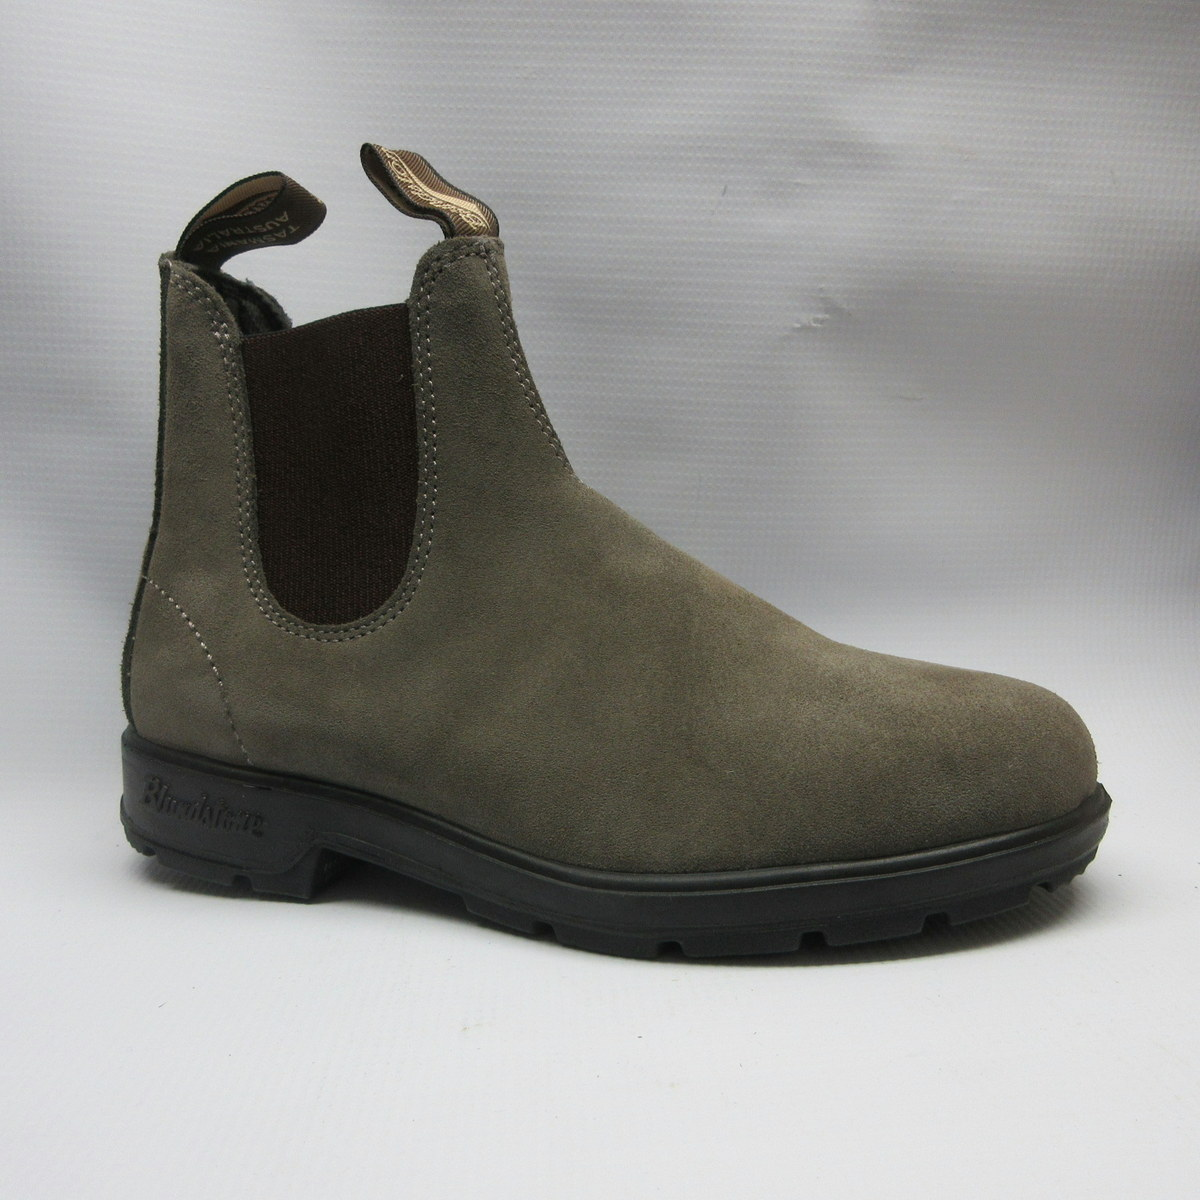 Blundstone Boots 1459 Lined Suede Boots